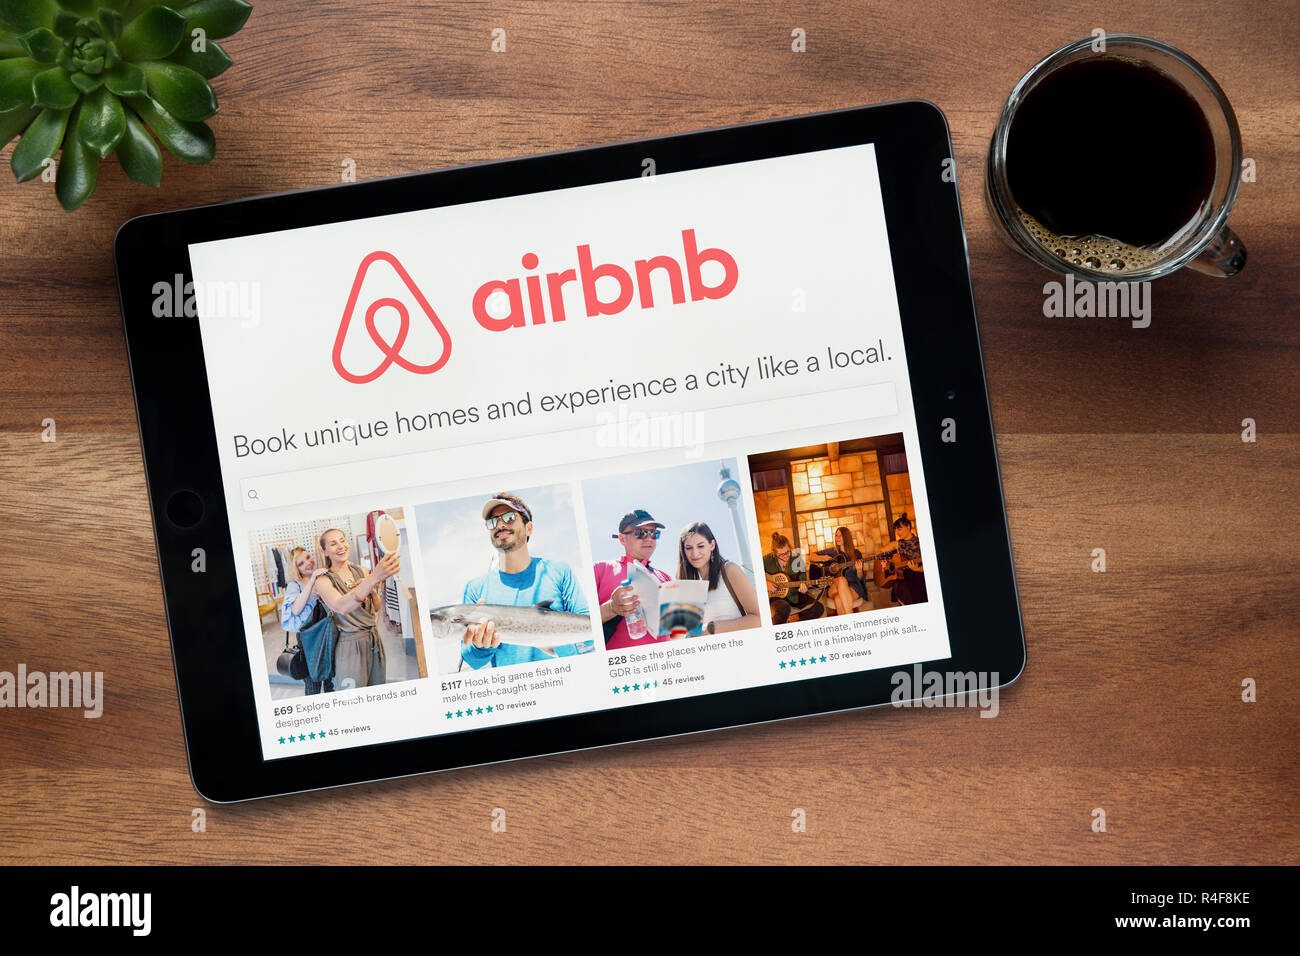 The website of Airbnb is seen on an iPad tablet, on a wooden table along with an espresso coffee and a house plant (Editorial use only). - Stock Image